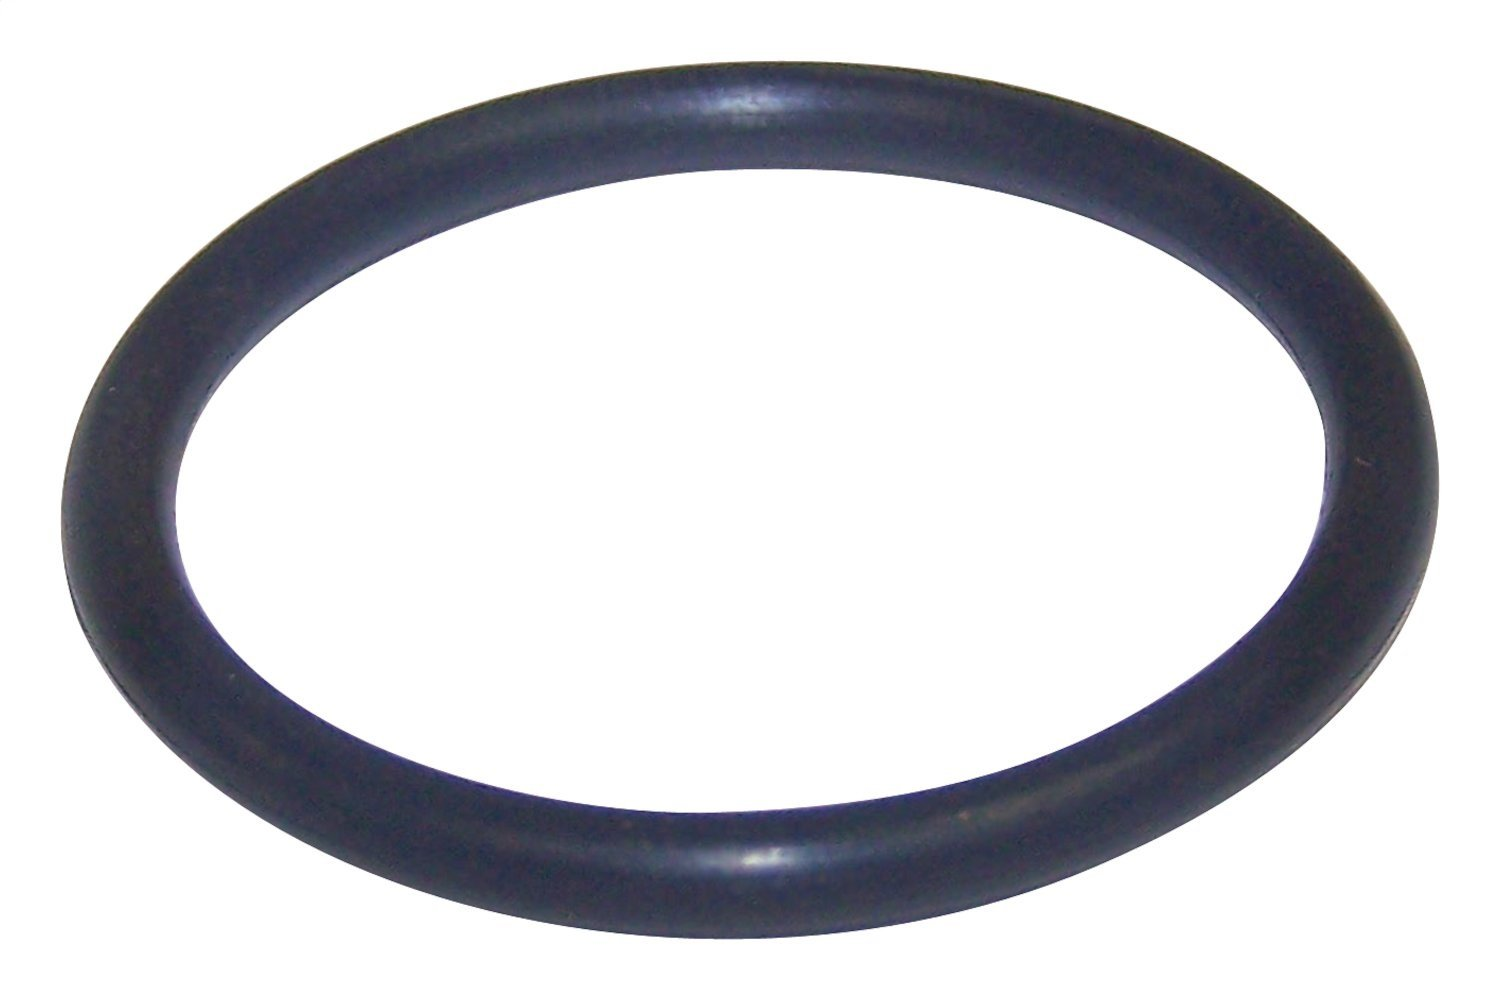 Intermediate Shaft Seal 1980-1983 CJ-5; 1980-1986 Cw/ Dana 300 Transfer Case; Intermediate Shaft Seal J0942114 Crown Automotive